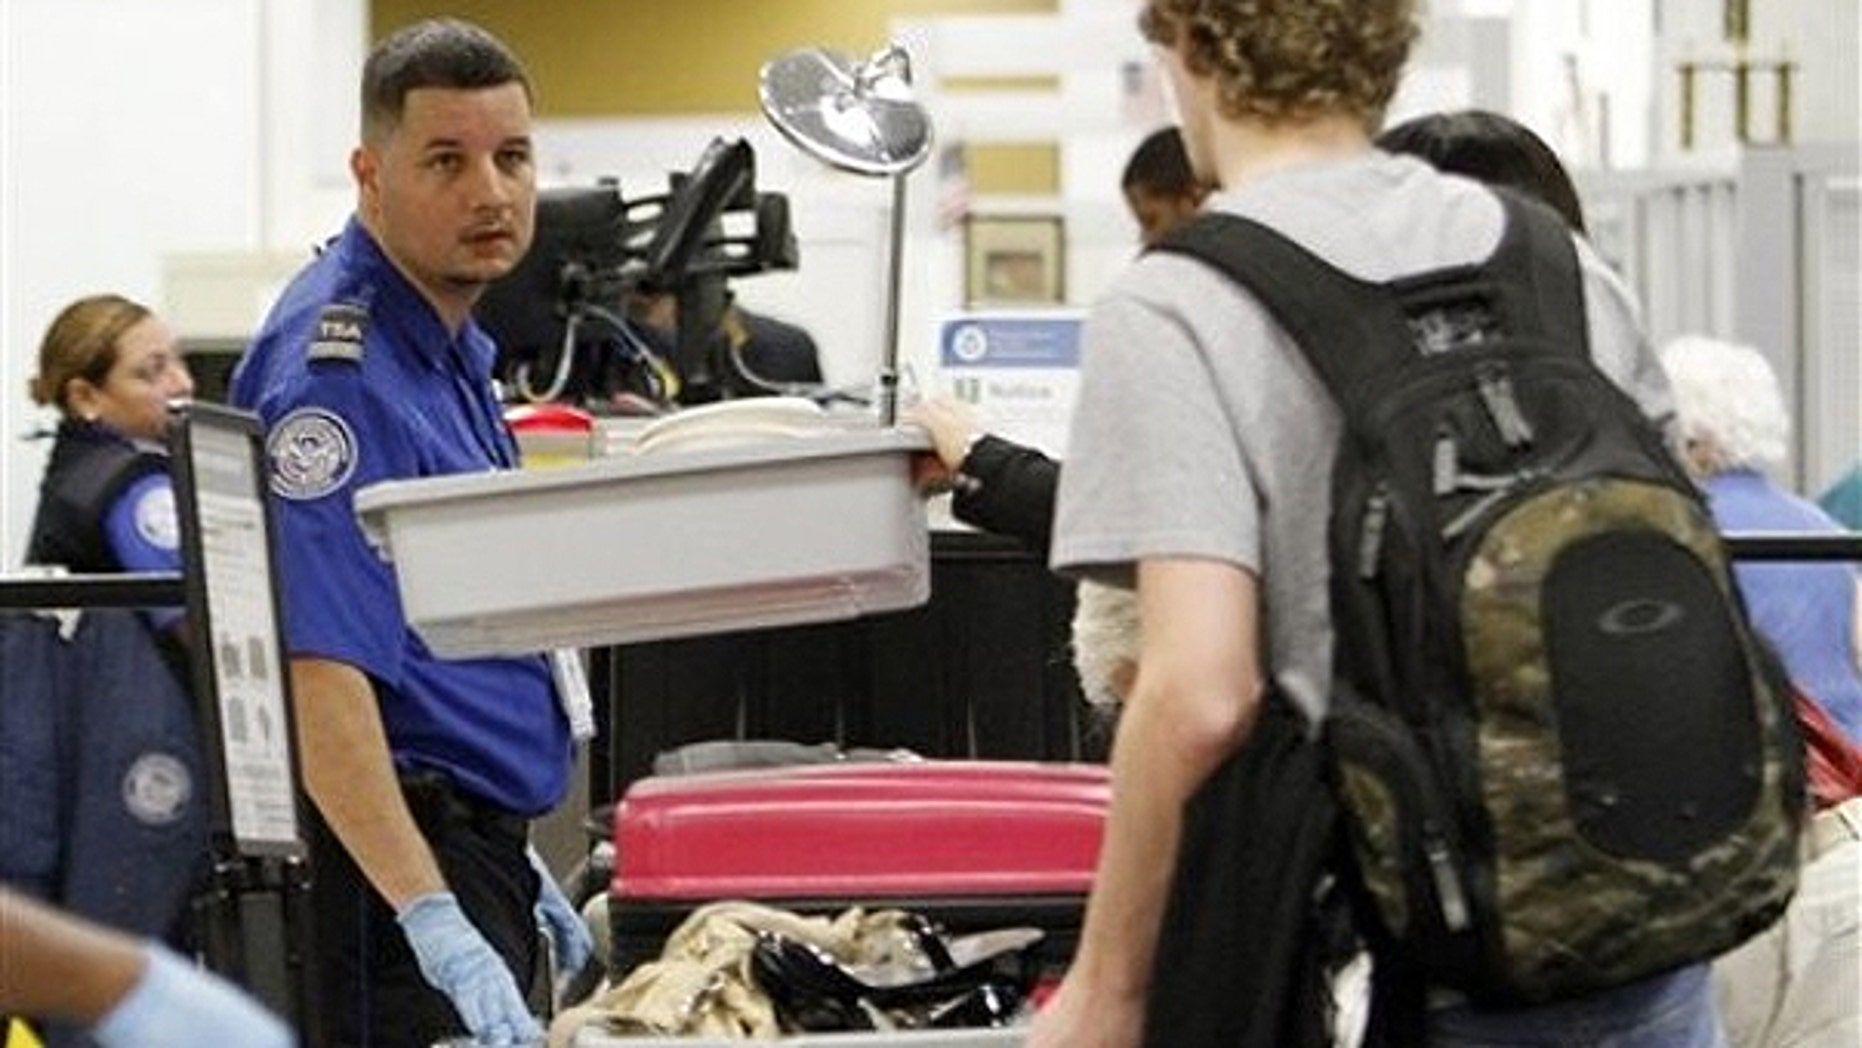 Dec. 23, 2010: A TSA officer checks passengers personal belongings at the X-ray machine at Miami International Airport in Miami.